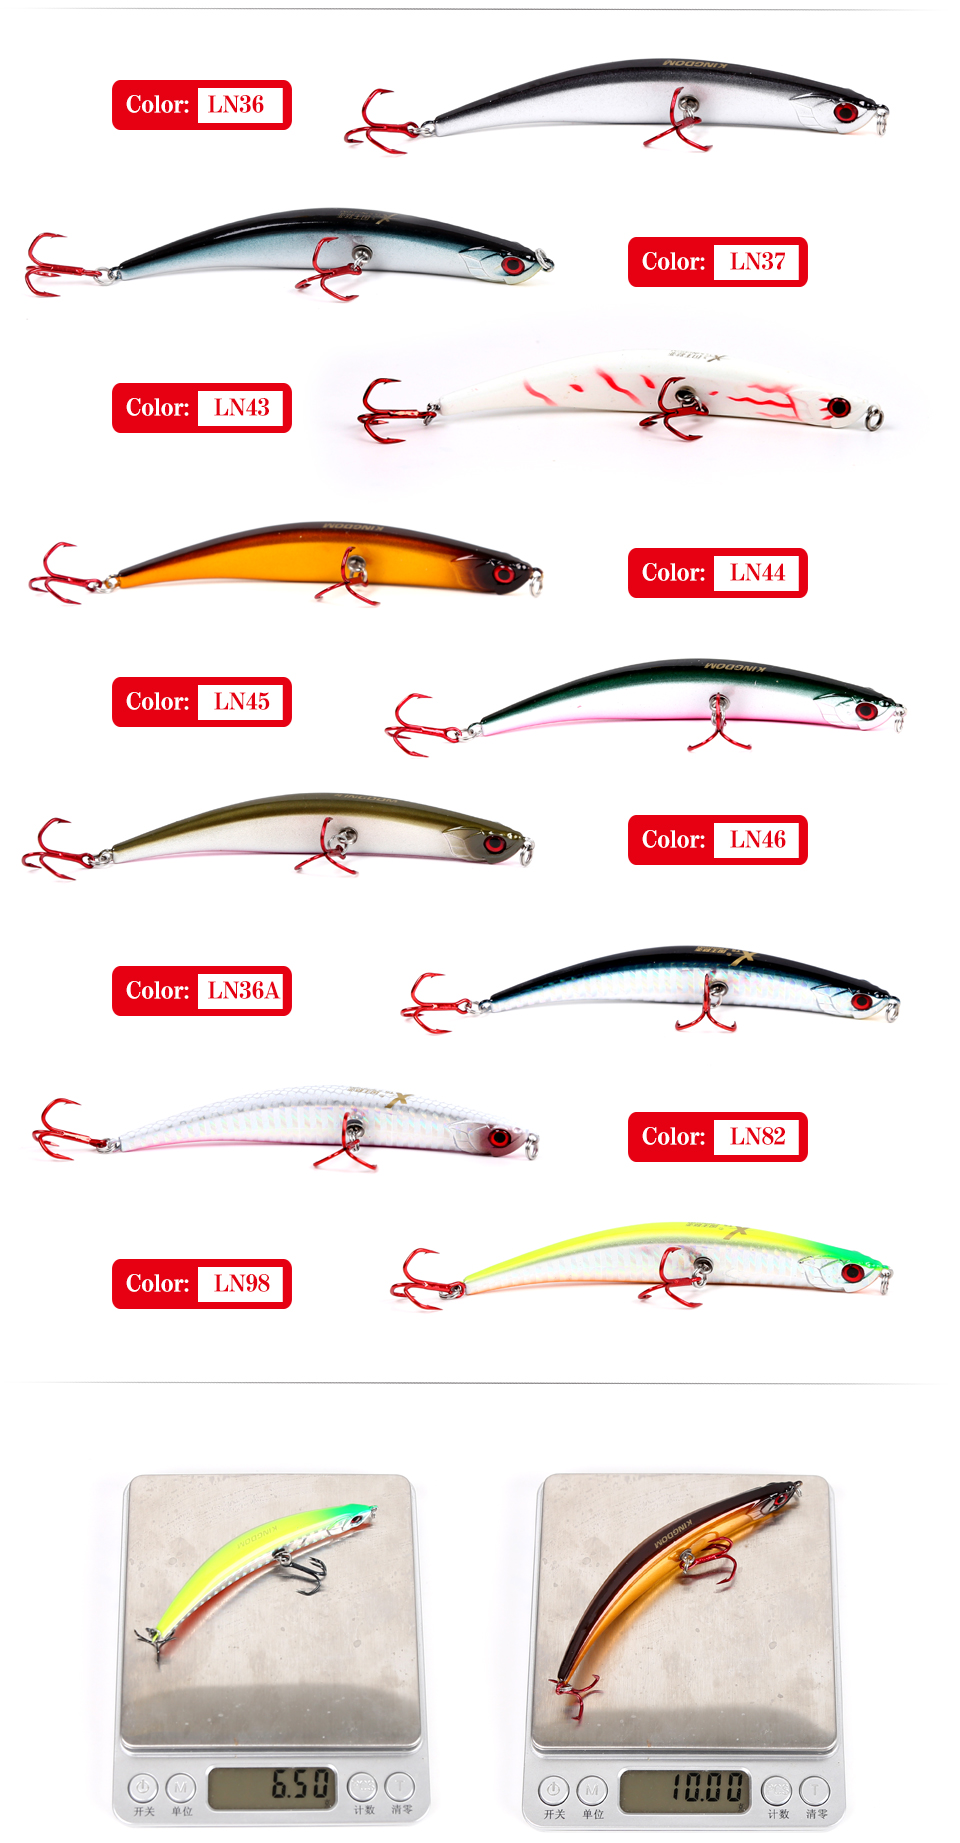 Kingdom Floating Pencil fishing lures 110mm10g 86mm6.5g Hard Baits Bending shape RED VMC Hook lure for Sea bass model 5349 (5)